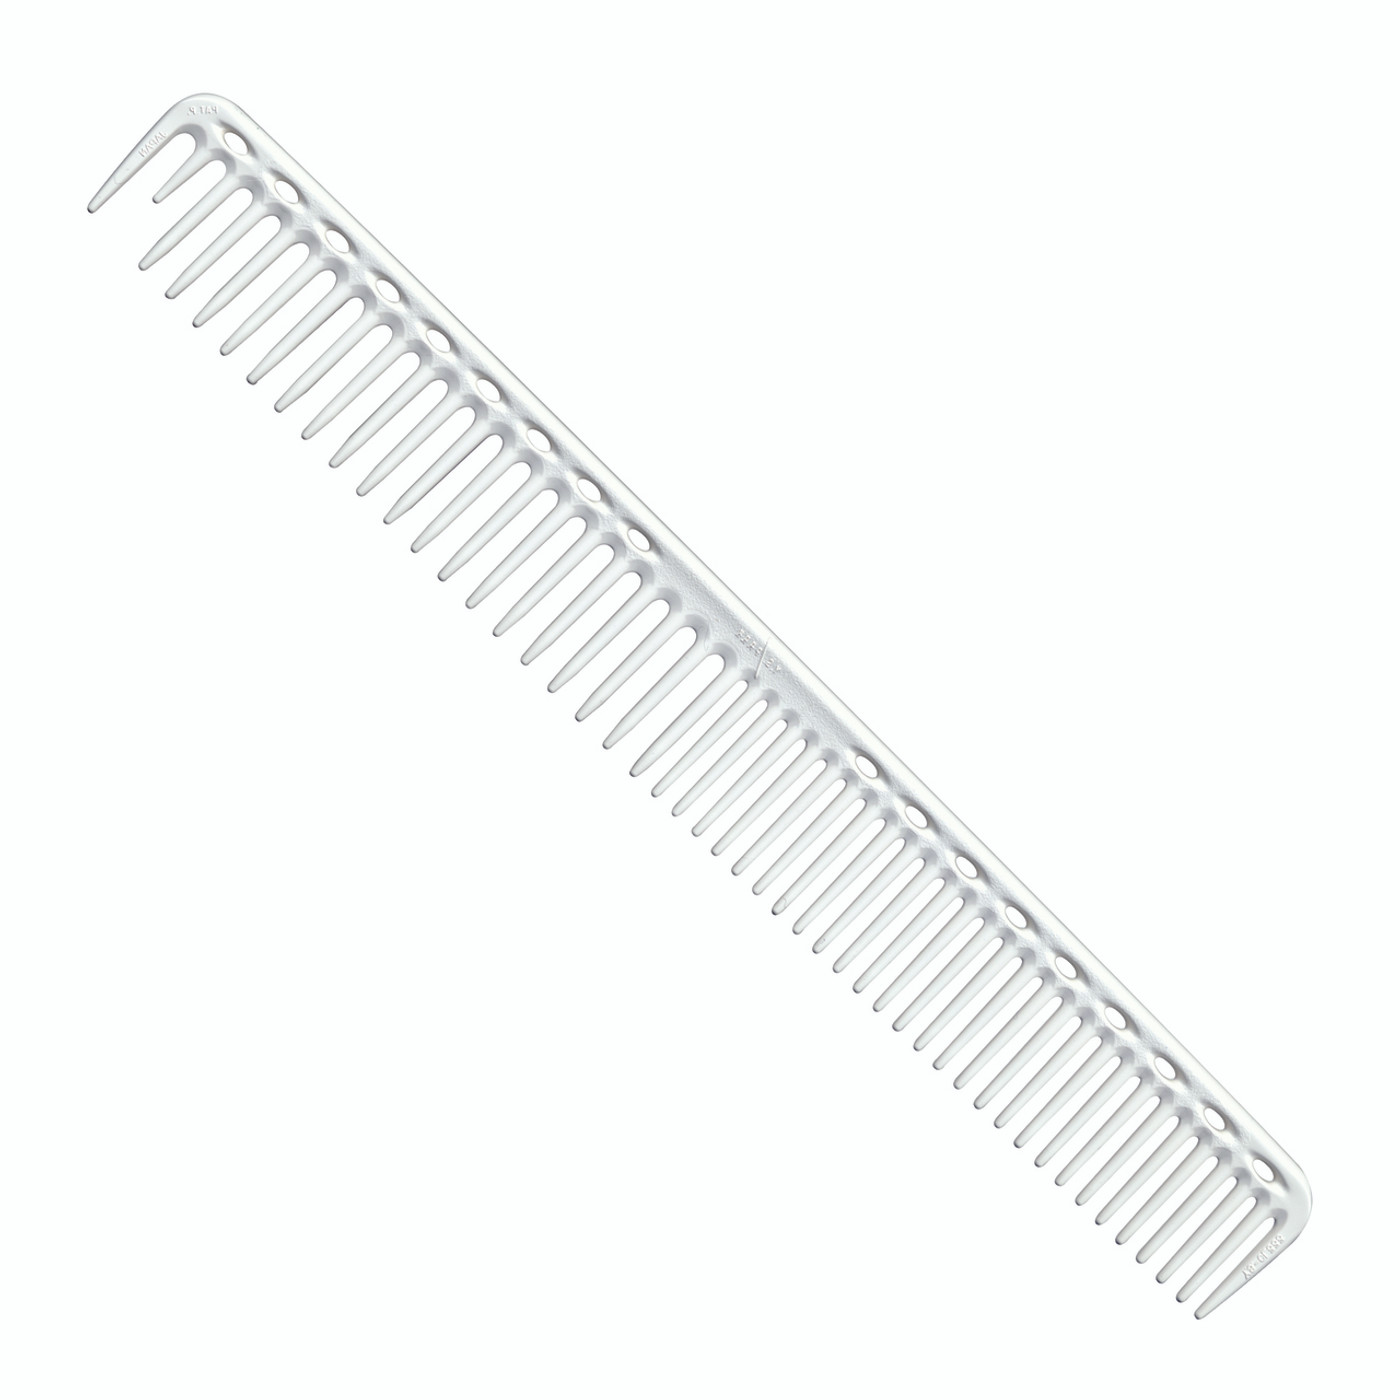 YS Park 333 Long Round Tooth Cutting Comb - White